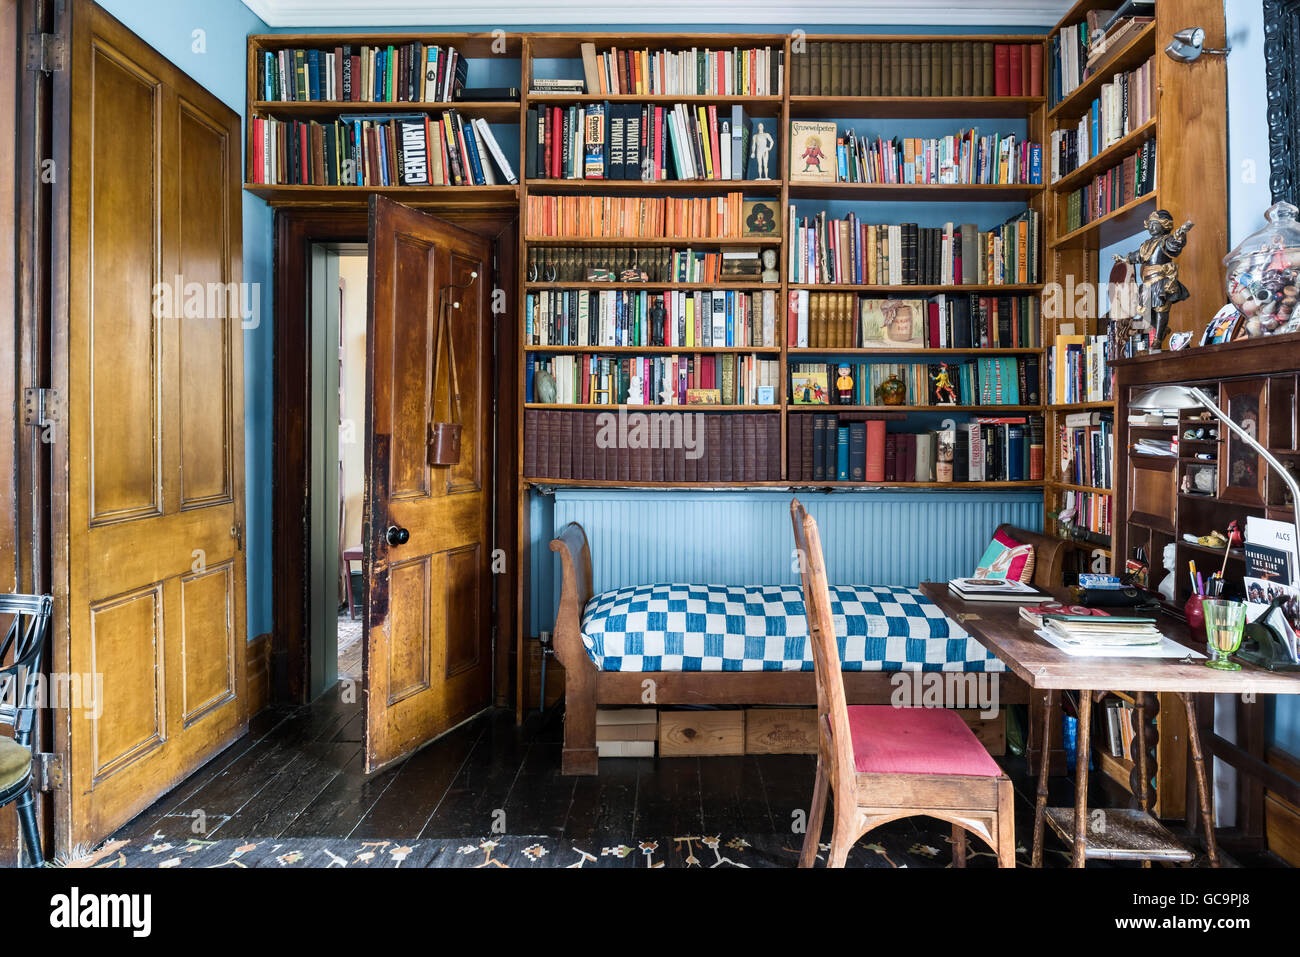 Wooden bookshelves above daybed with desk in study of Nottinghill home, London, UK - Stock Image